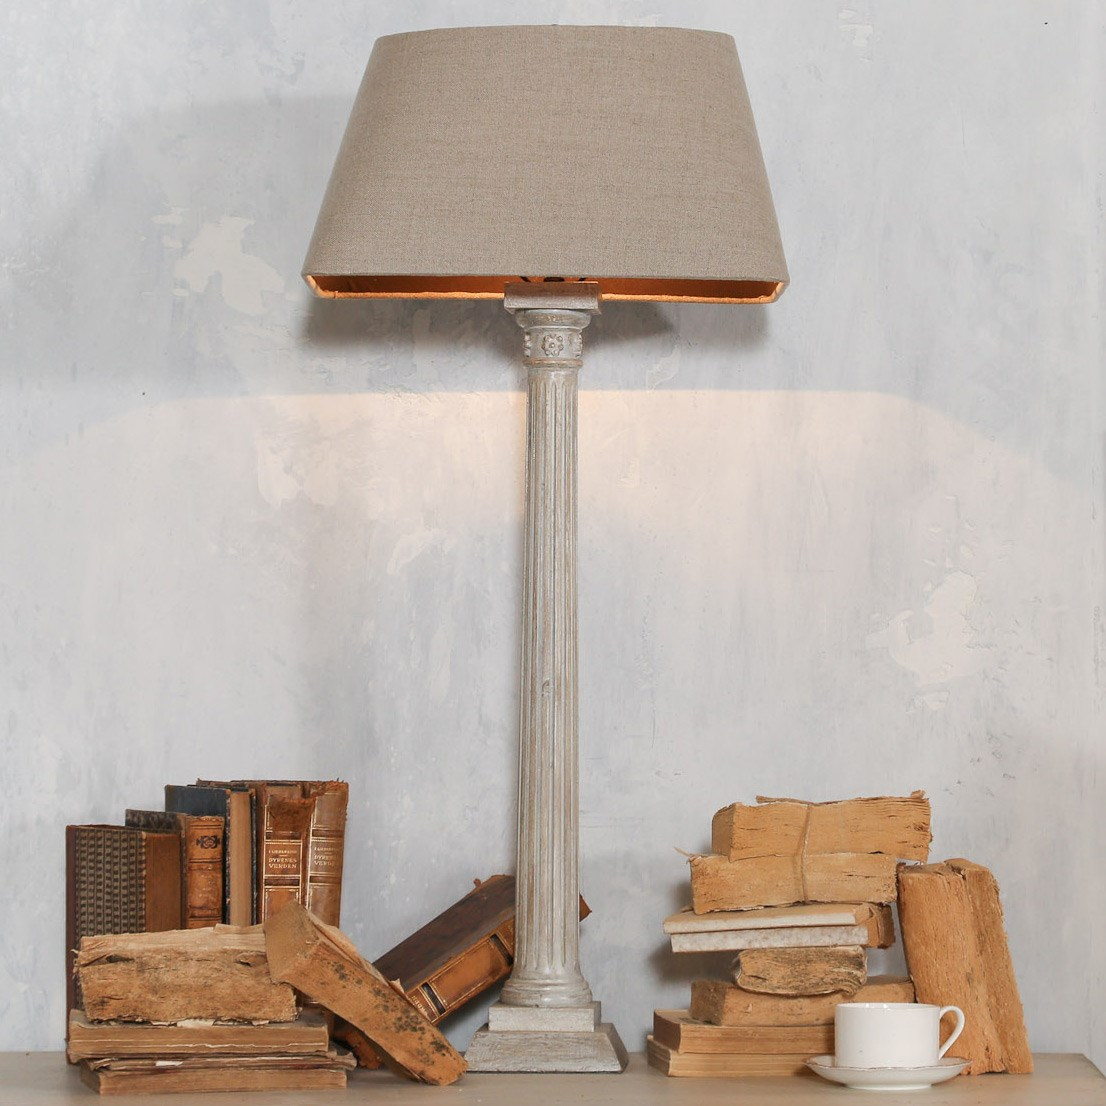 EL Column White Table Lamp 5wx5dx35h use.jpg